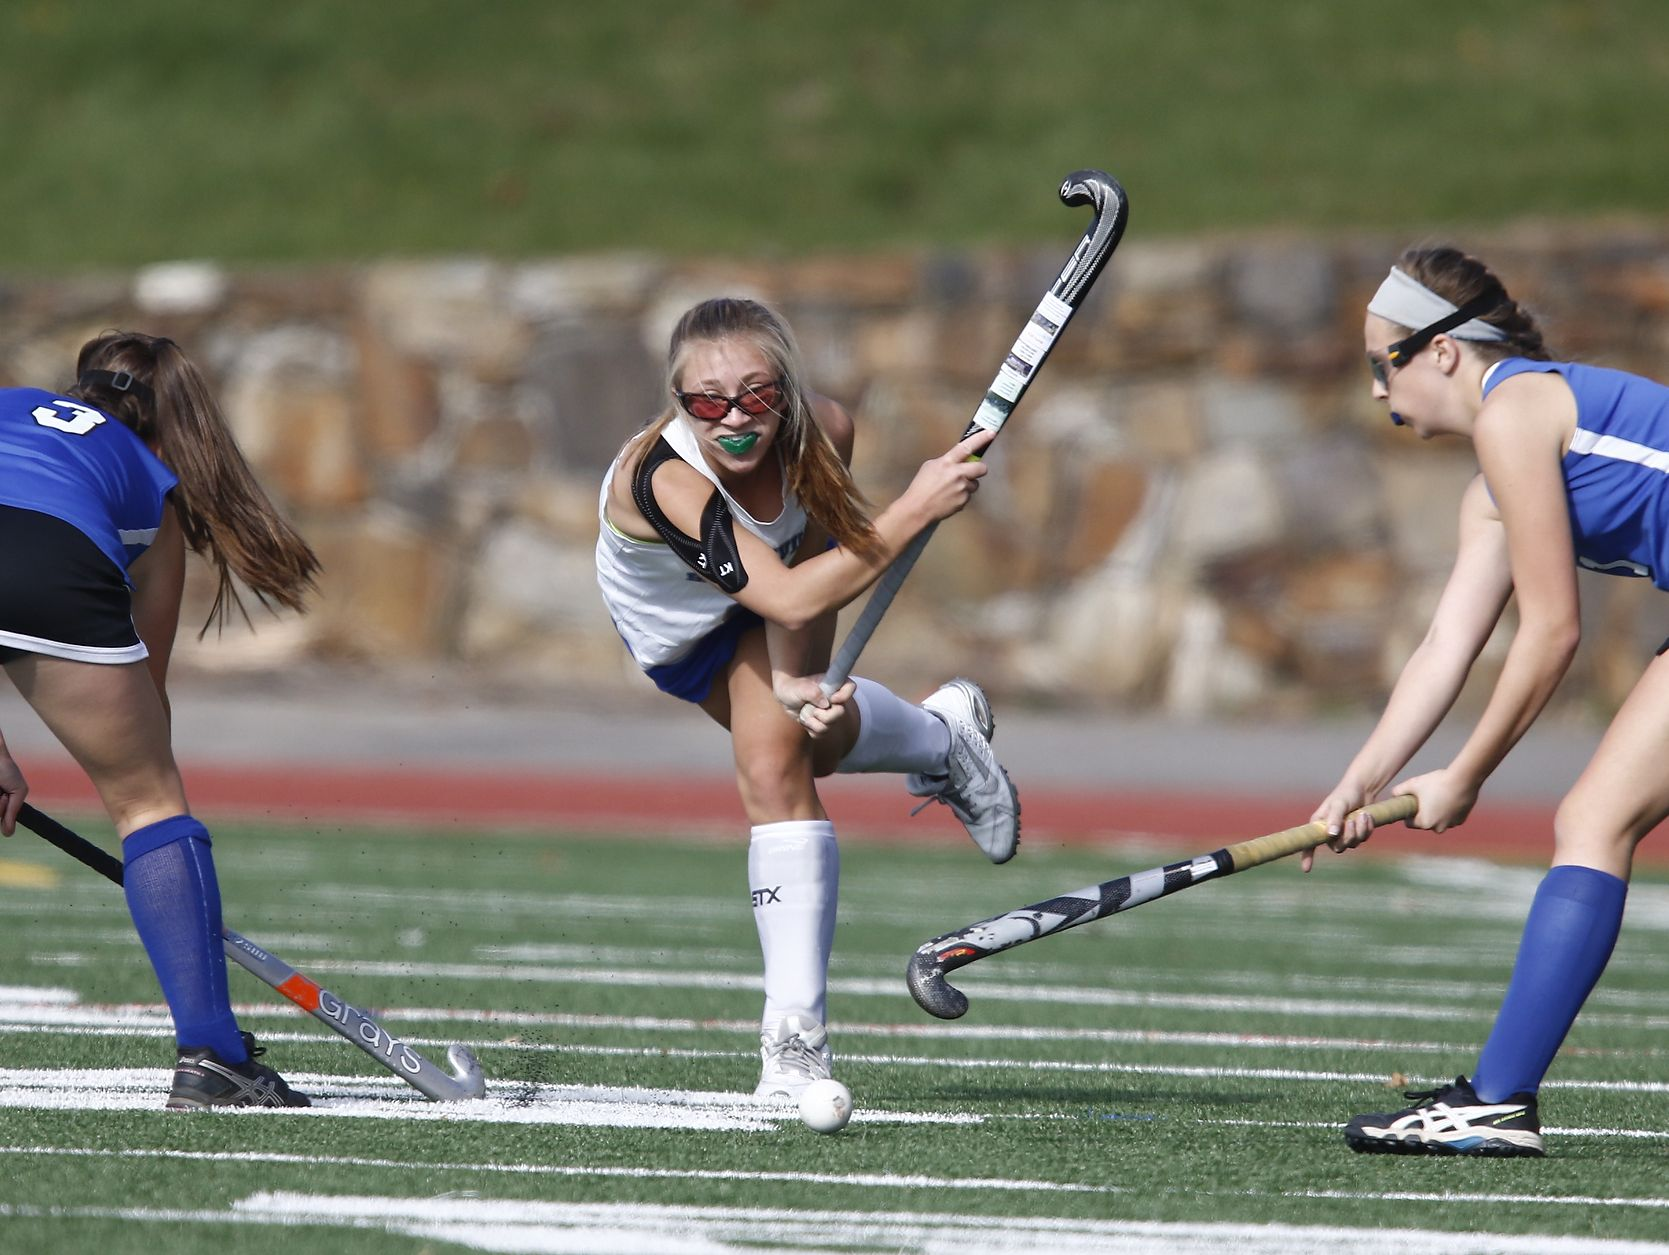 Bronxville's Sophie Kohloff (9) fires a pass through the Roundout Valley defense during their 2-0 win in the Class C regional championship field hockey game at Valhalla High School on Saturday, November 5, 2016.